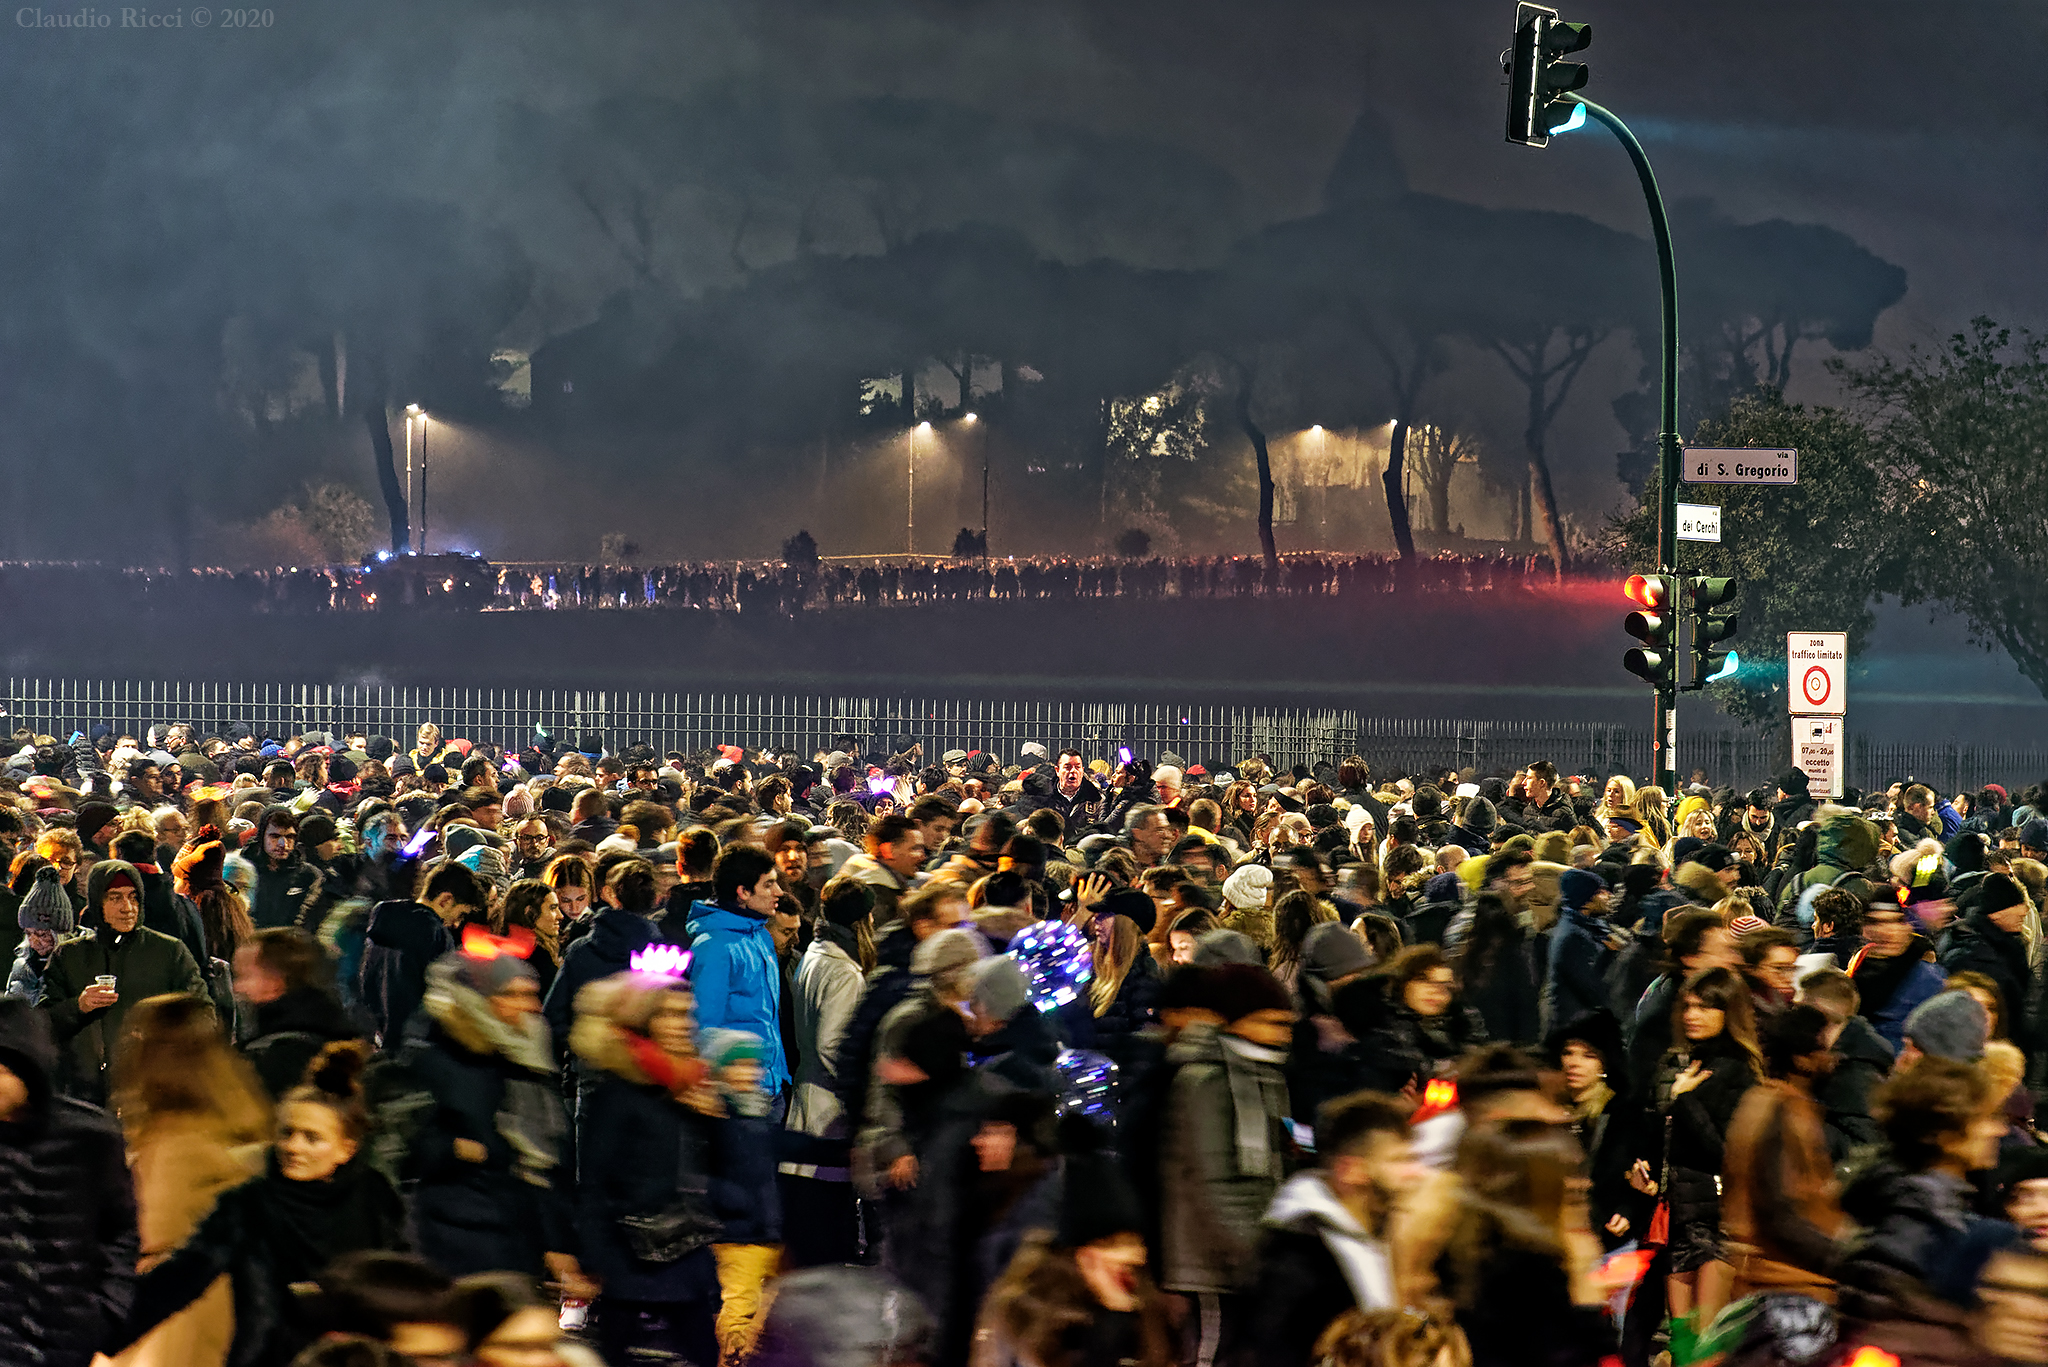 New Year's Eve in Rome, Circus Maximus, 1 January 2020...